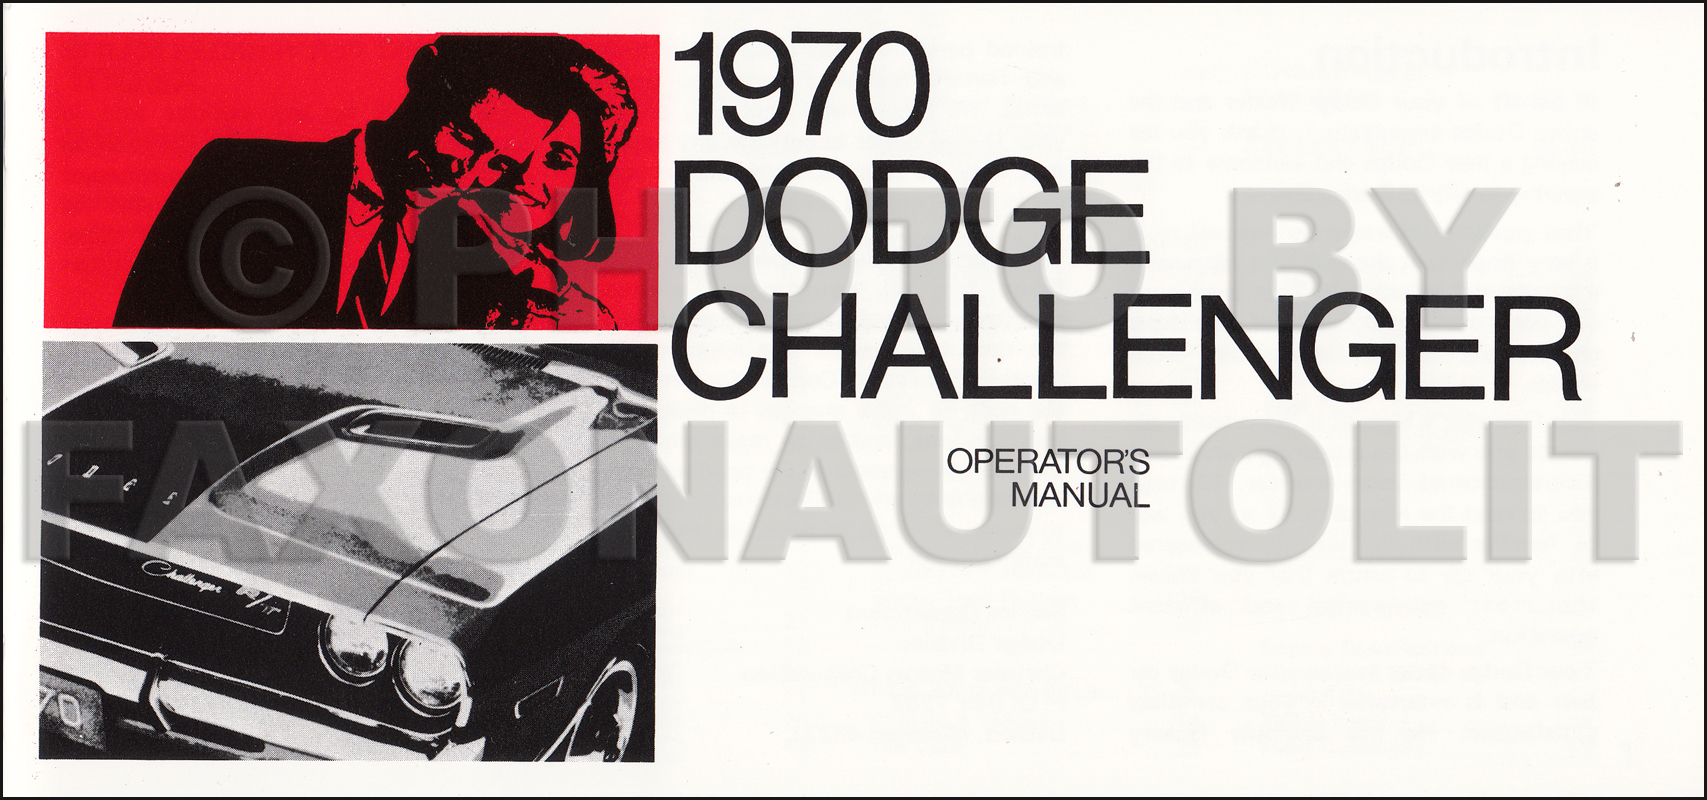 1970 Dodge Challenger Owner's Manual Reprint